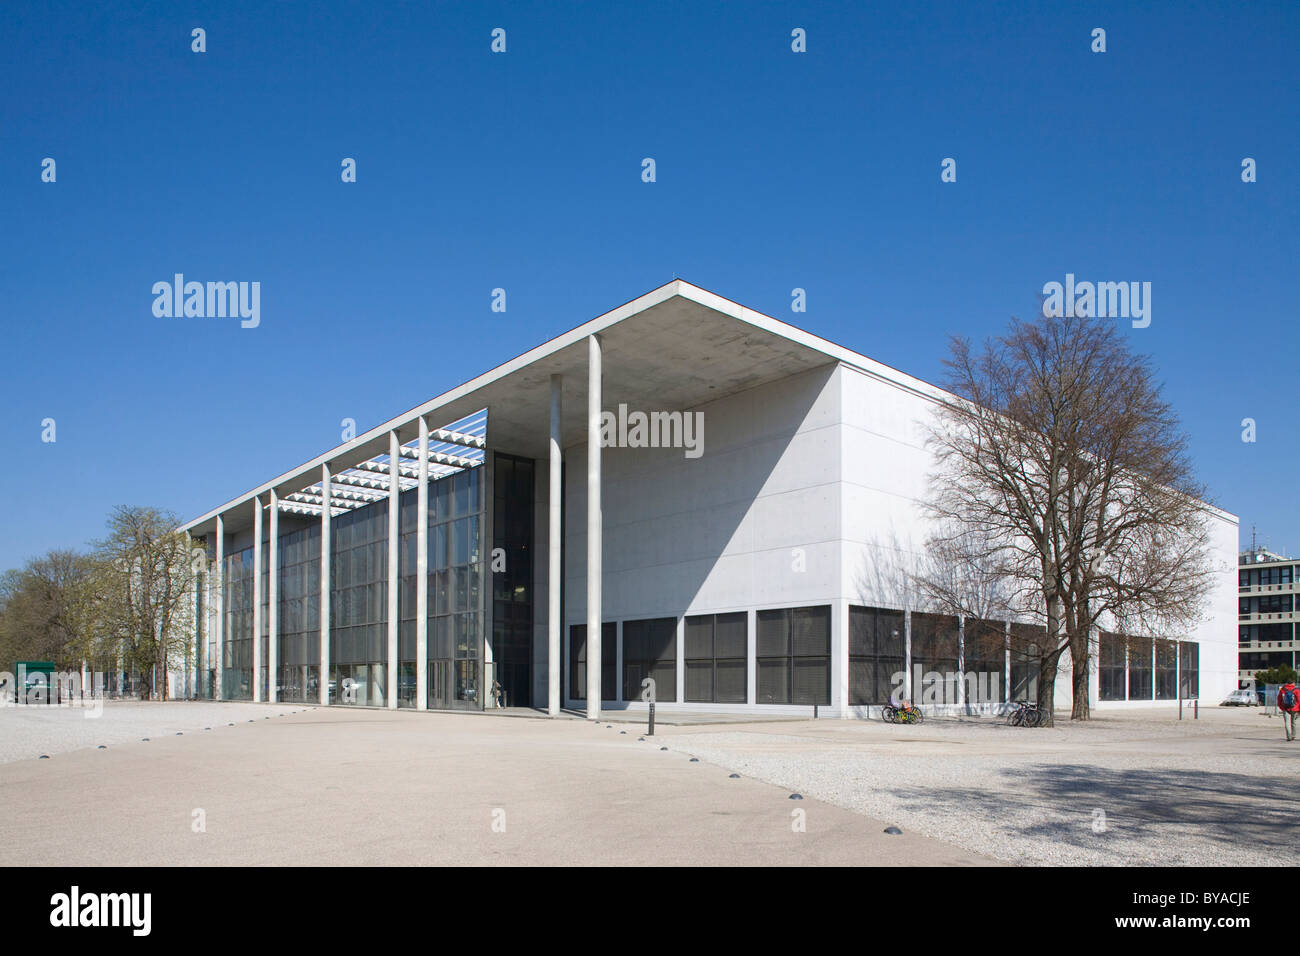 Pinakothek der Moderne, art museum in the Maxvorstadt district, Munich, Bavaria, Germany, Europe Stock Photo